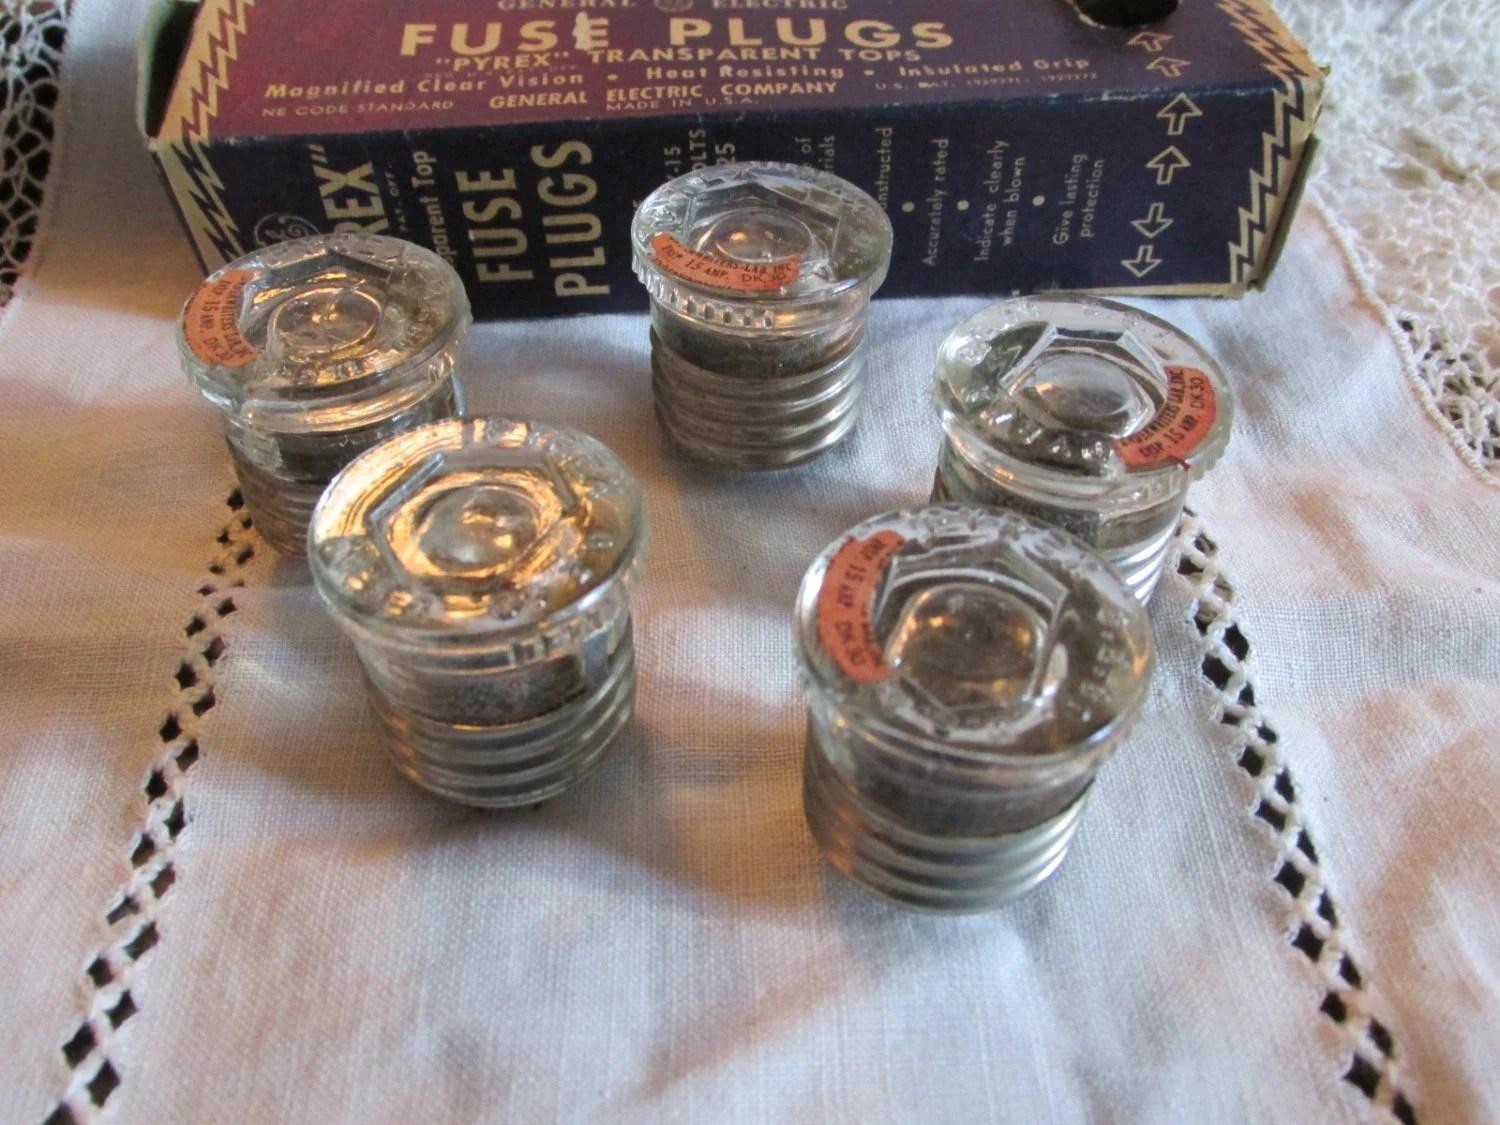 Vintage 1930s Box of 5 PYREX FUSE PLUGs GE 15 Amp General Etsy